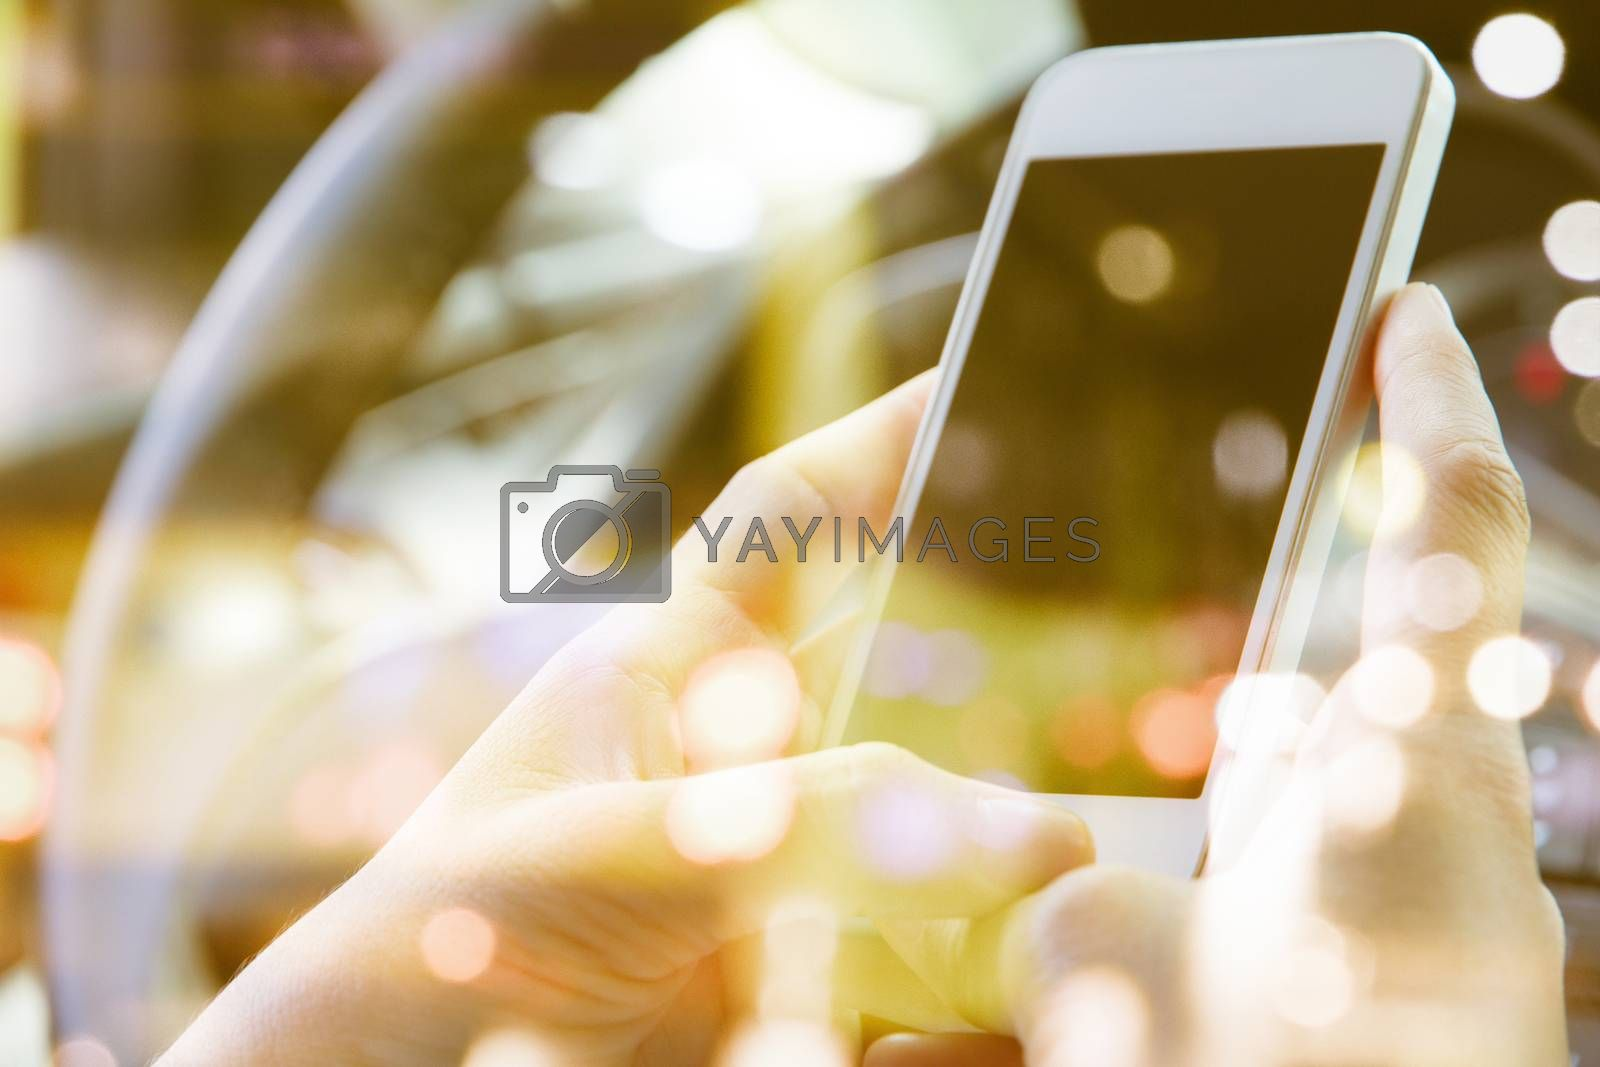 image of people sitting in the car using smart phone double exposure and blurred view of car on street at night